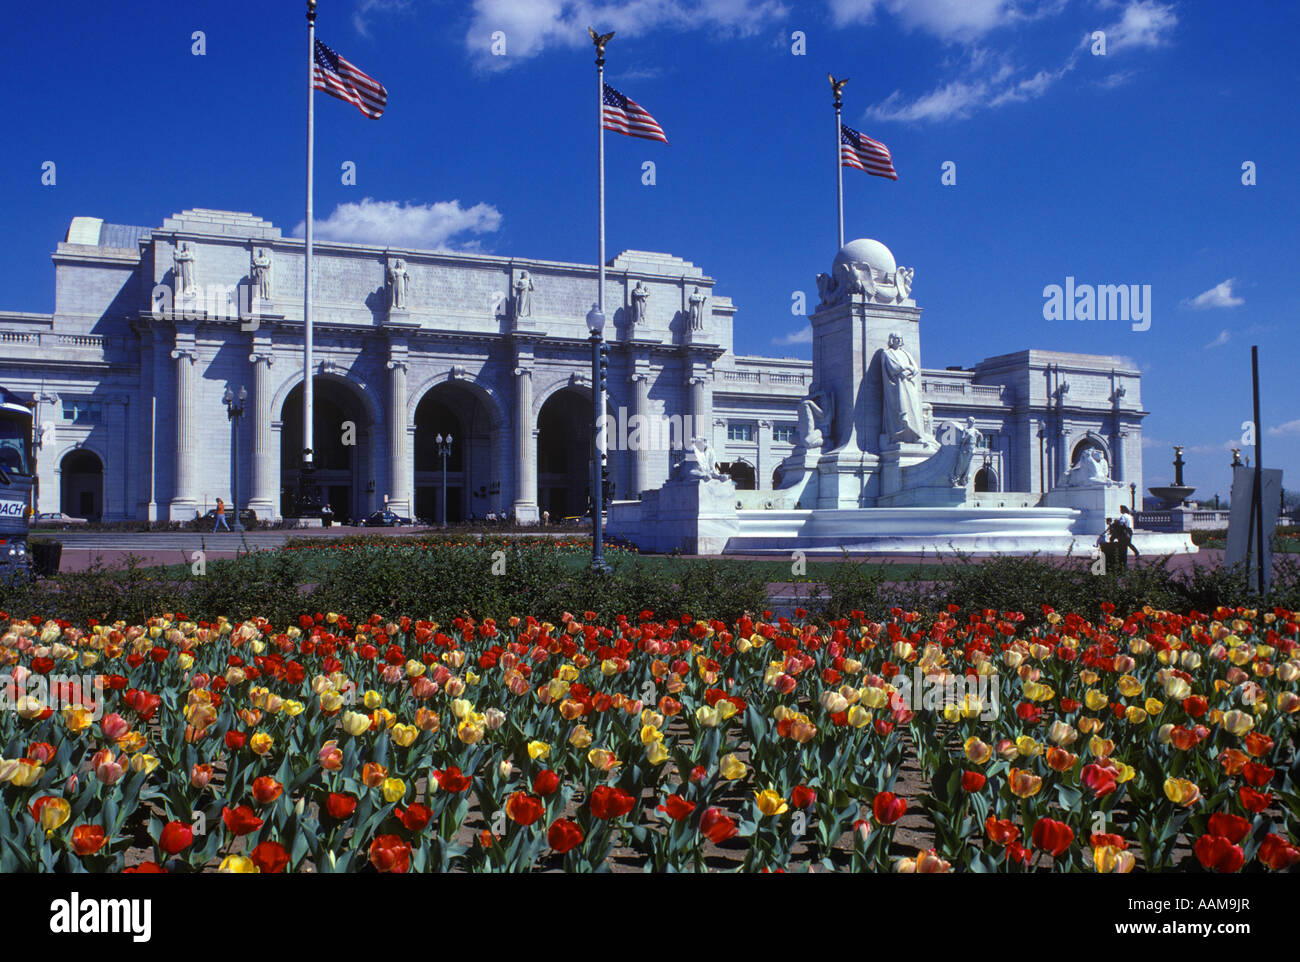 UNION STATION EN PRIMAVERA Tulipanes en Washington DC en primer plano Imagen De Stock